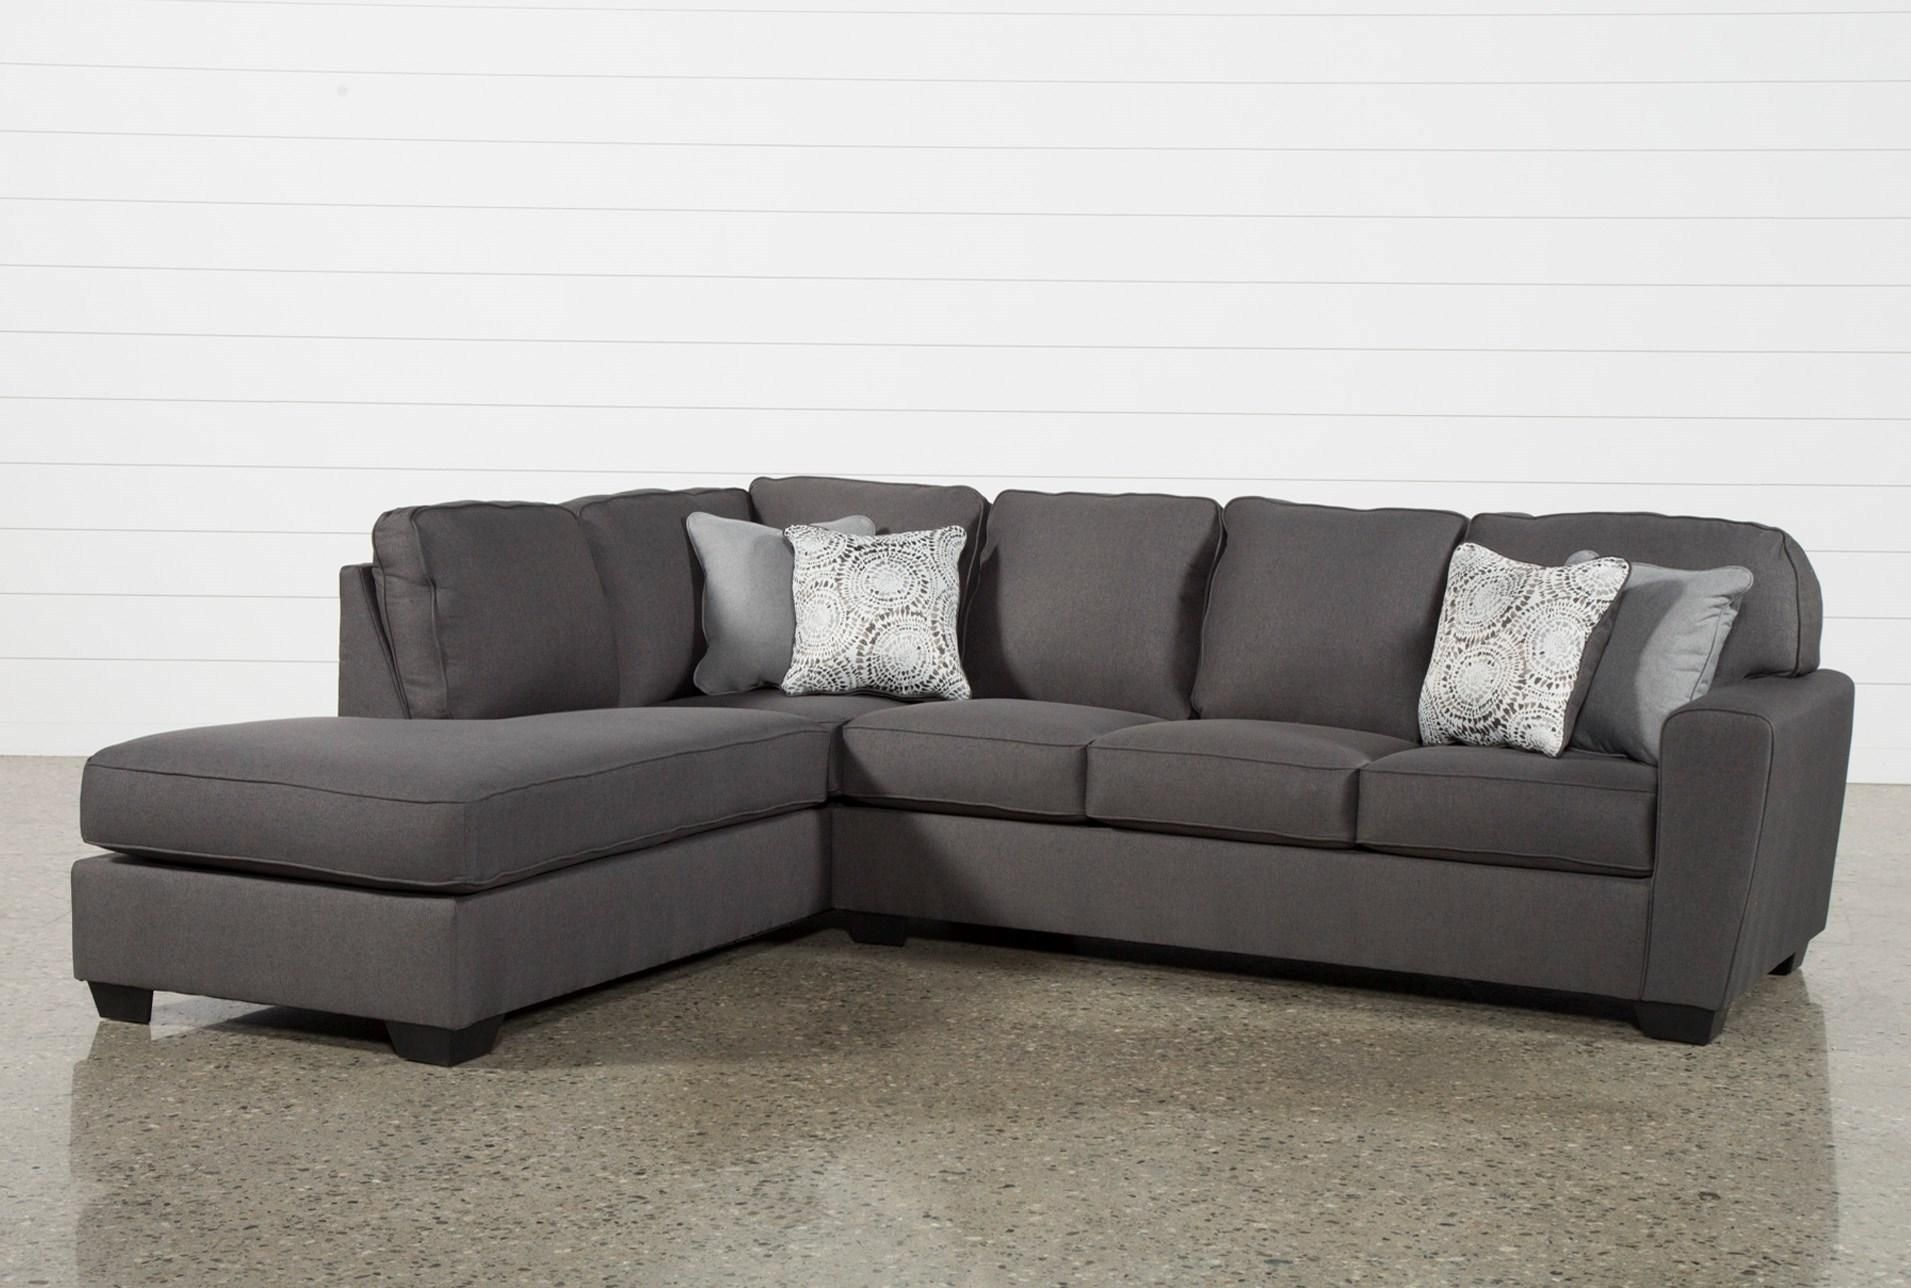 Mcdade Graphite 2 Piece Sectional W/laf Chaise | Graphite, Living intended for Arrowmask 2 Piece Sectionals With Laf Chaise